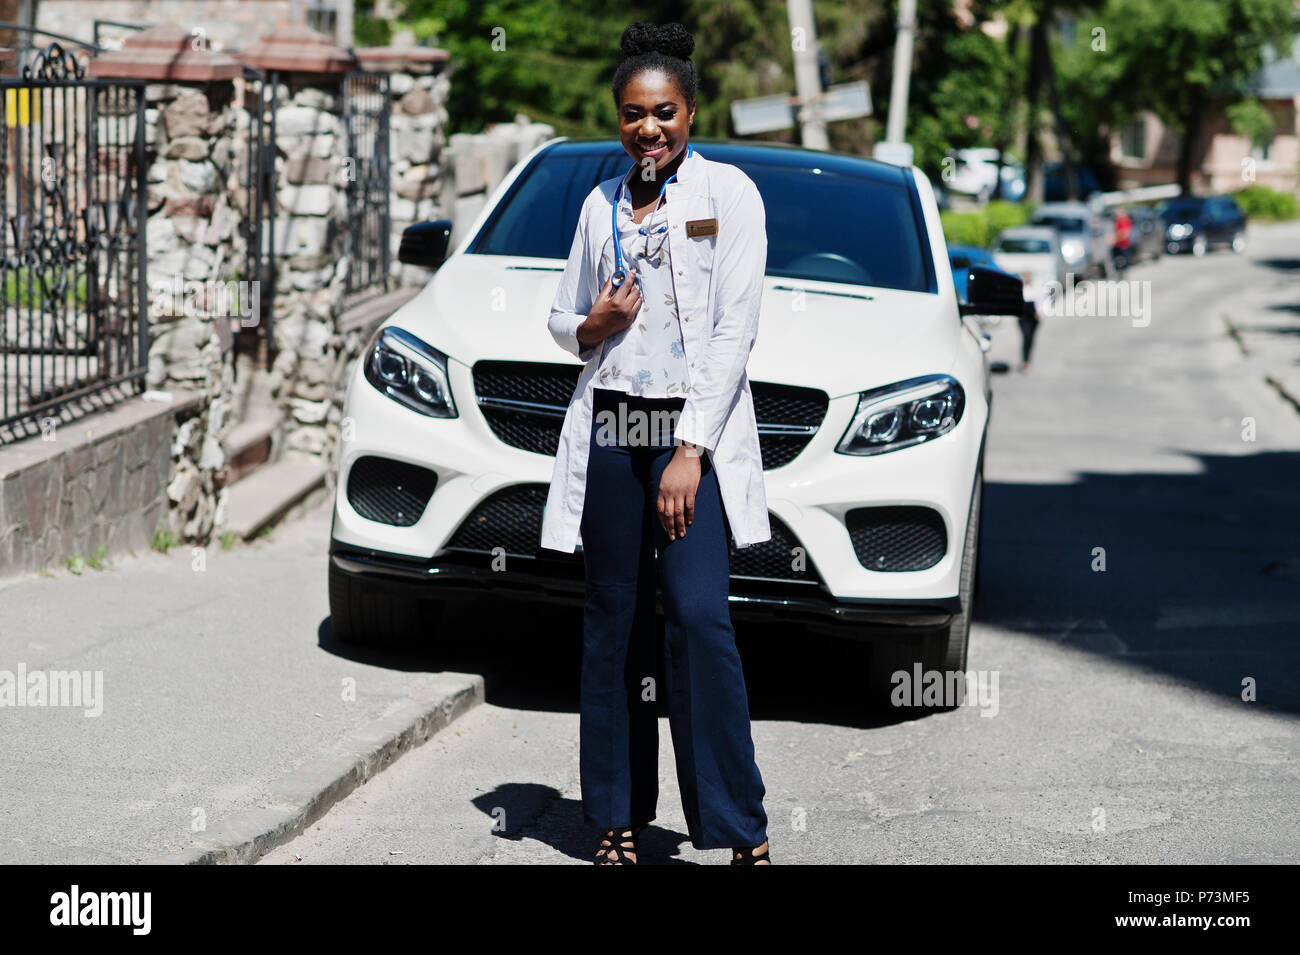 African american doctor female at lab coat with stethoscope posed outdoor against white suv car. - Stock Image